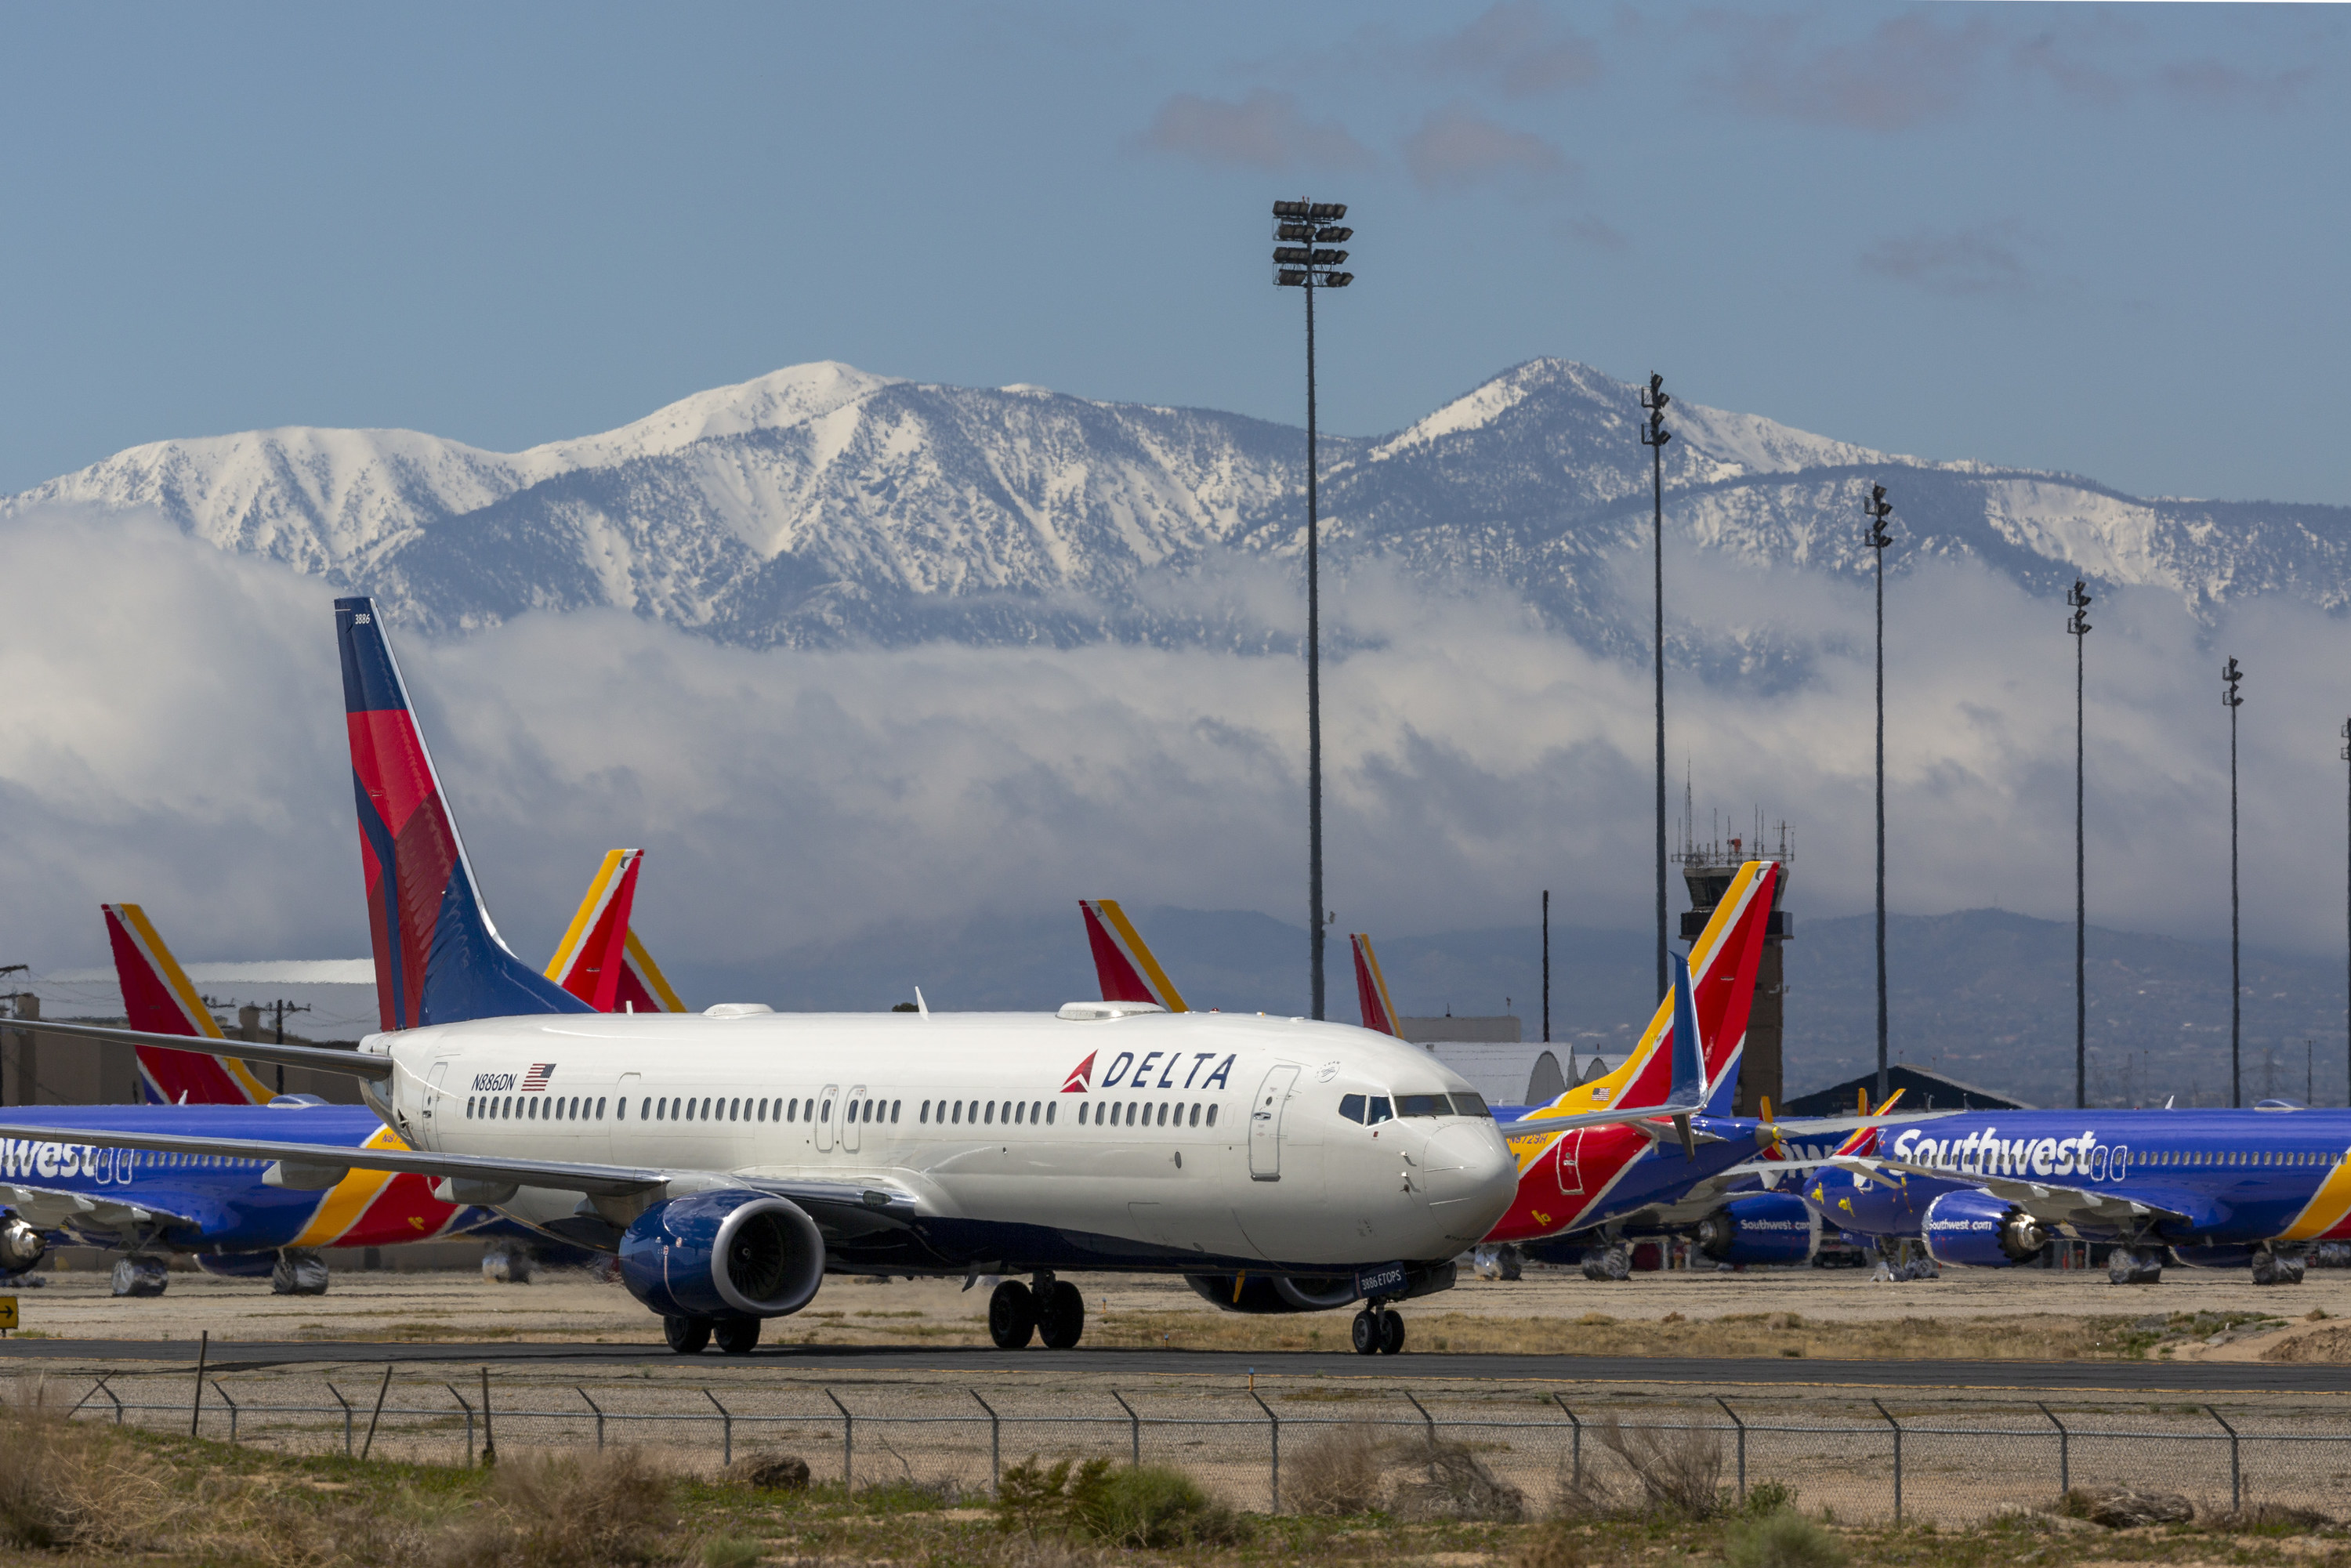 A Delta airlines plane on a runway